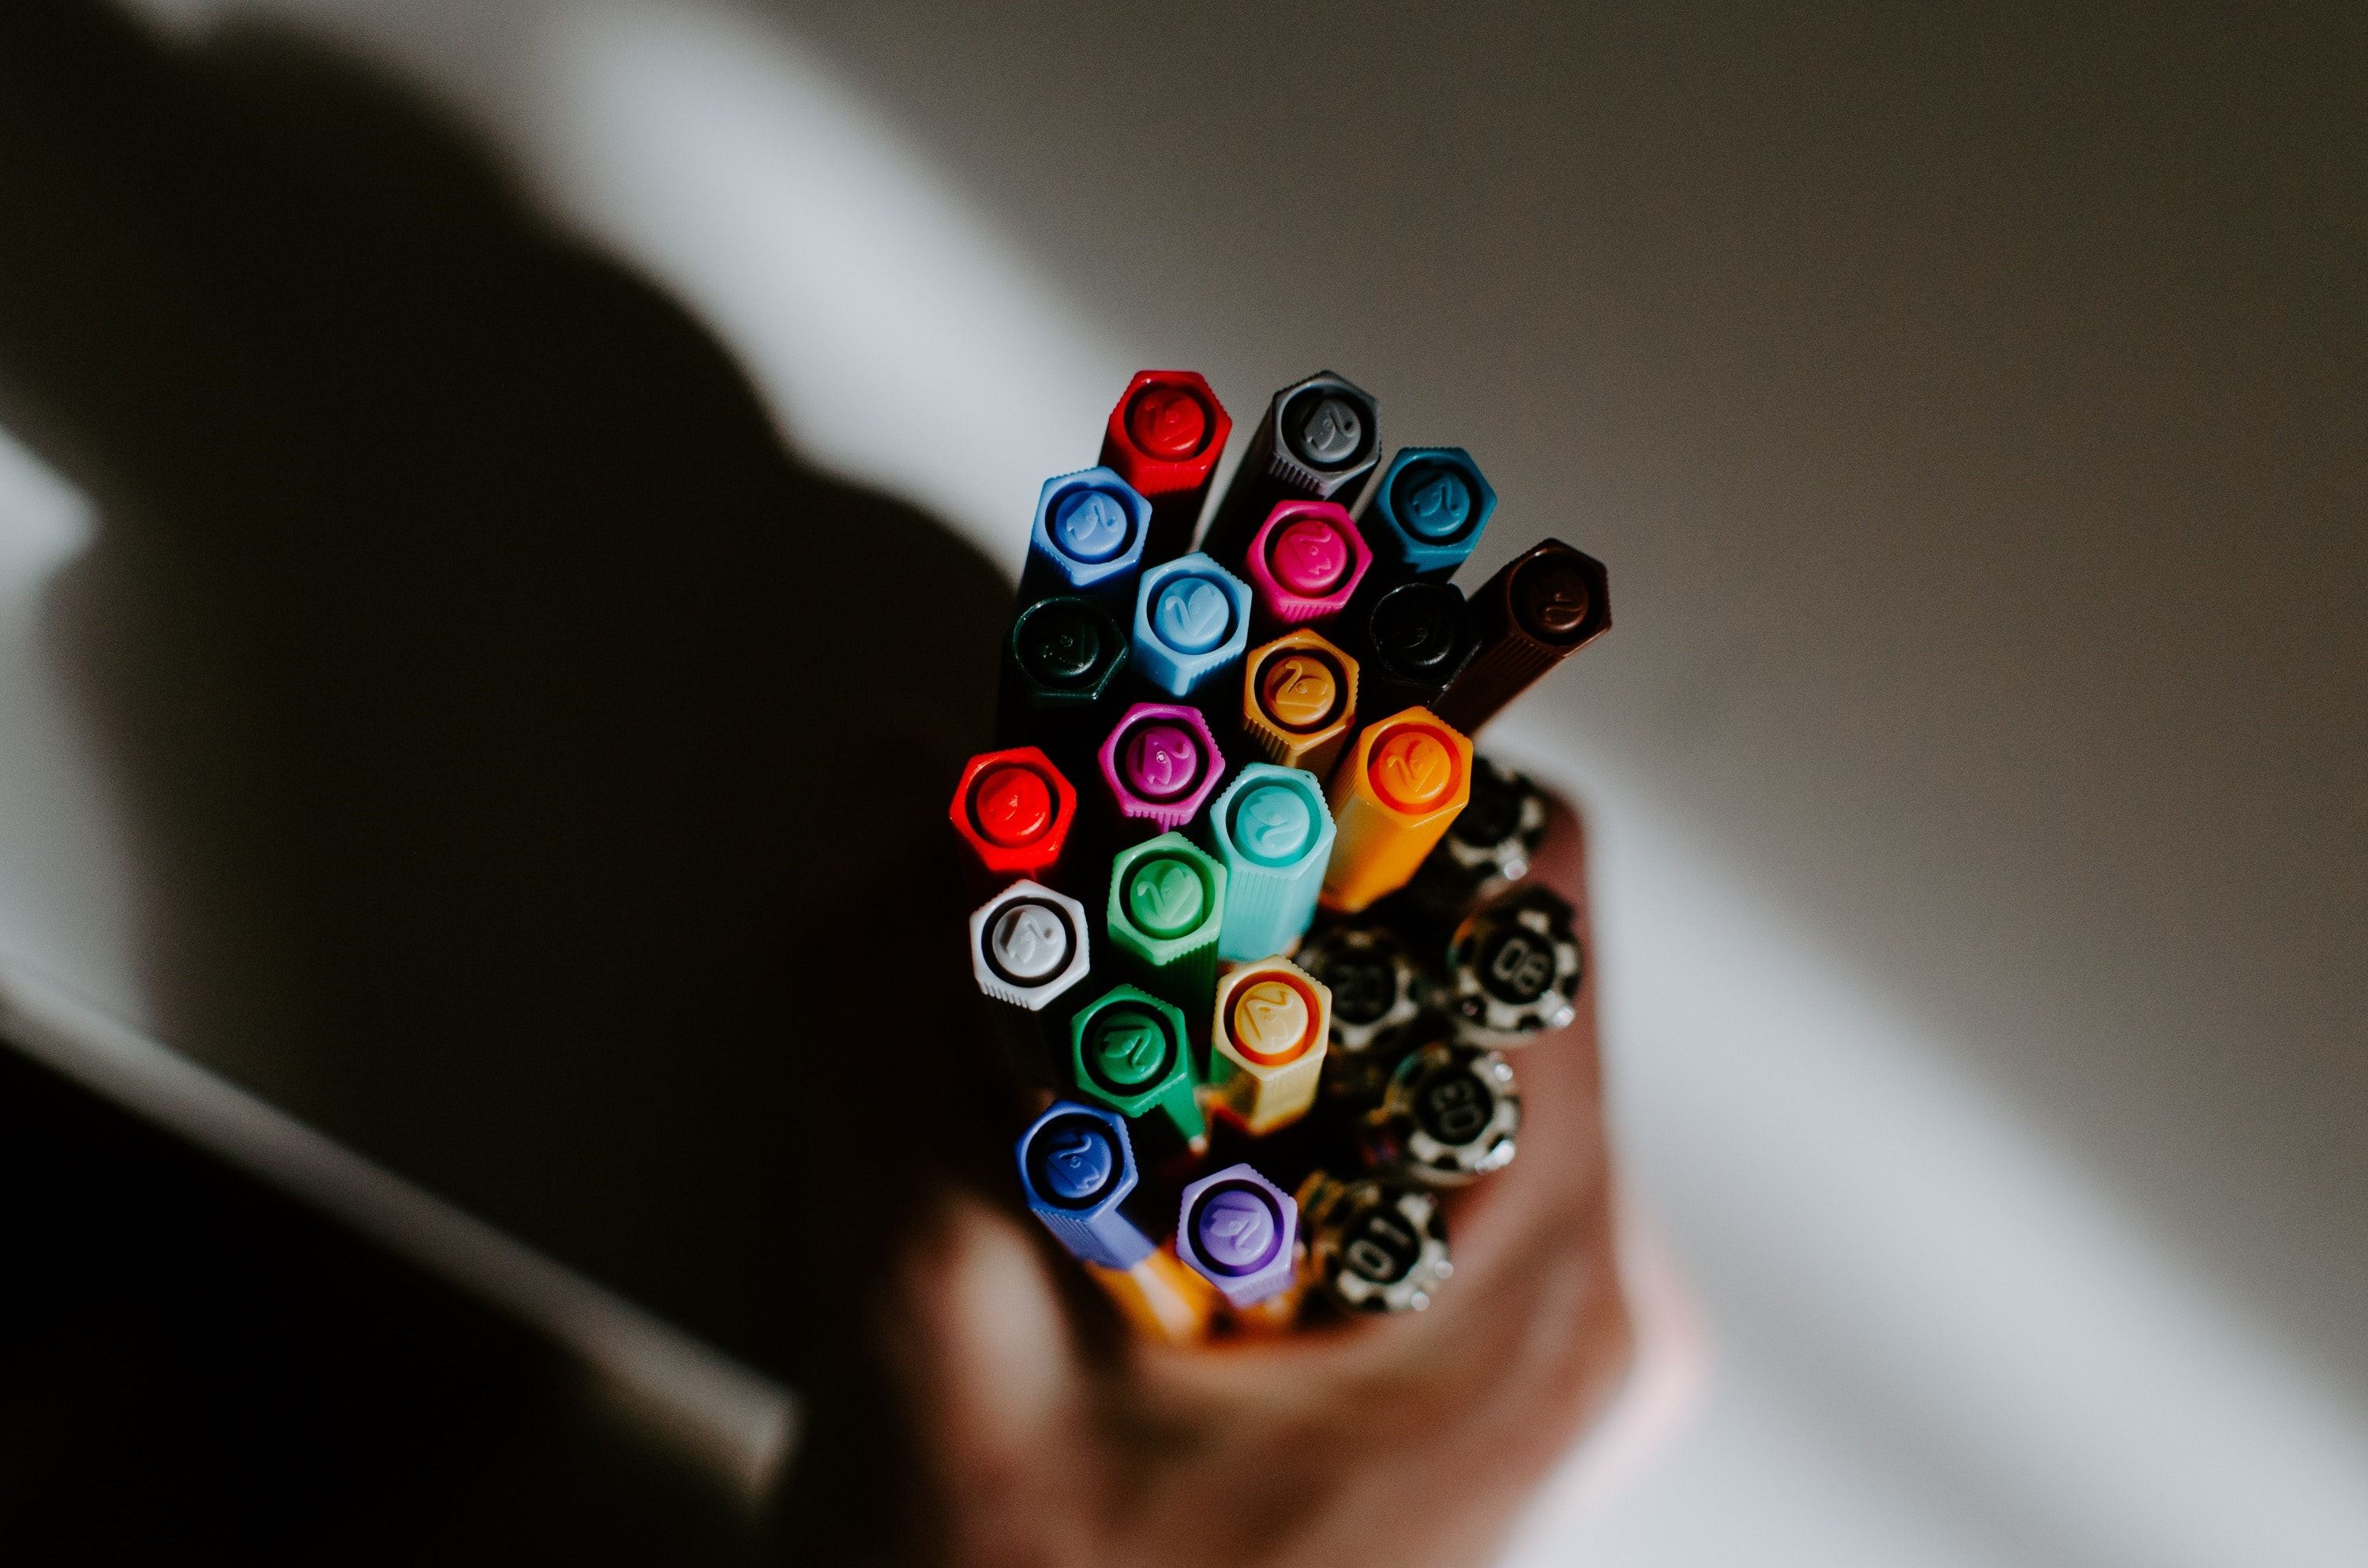 Image of pens